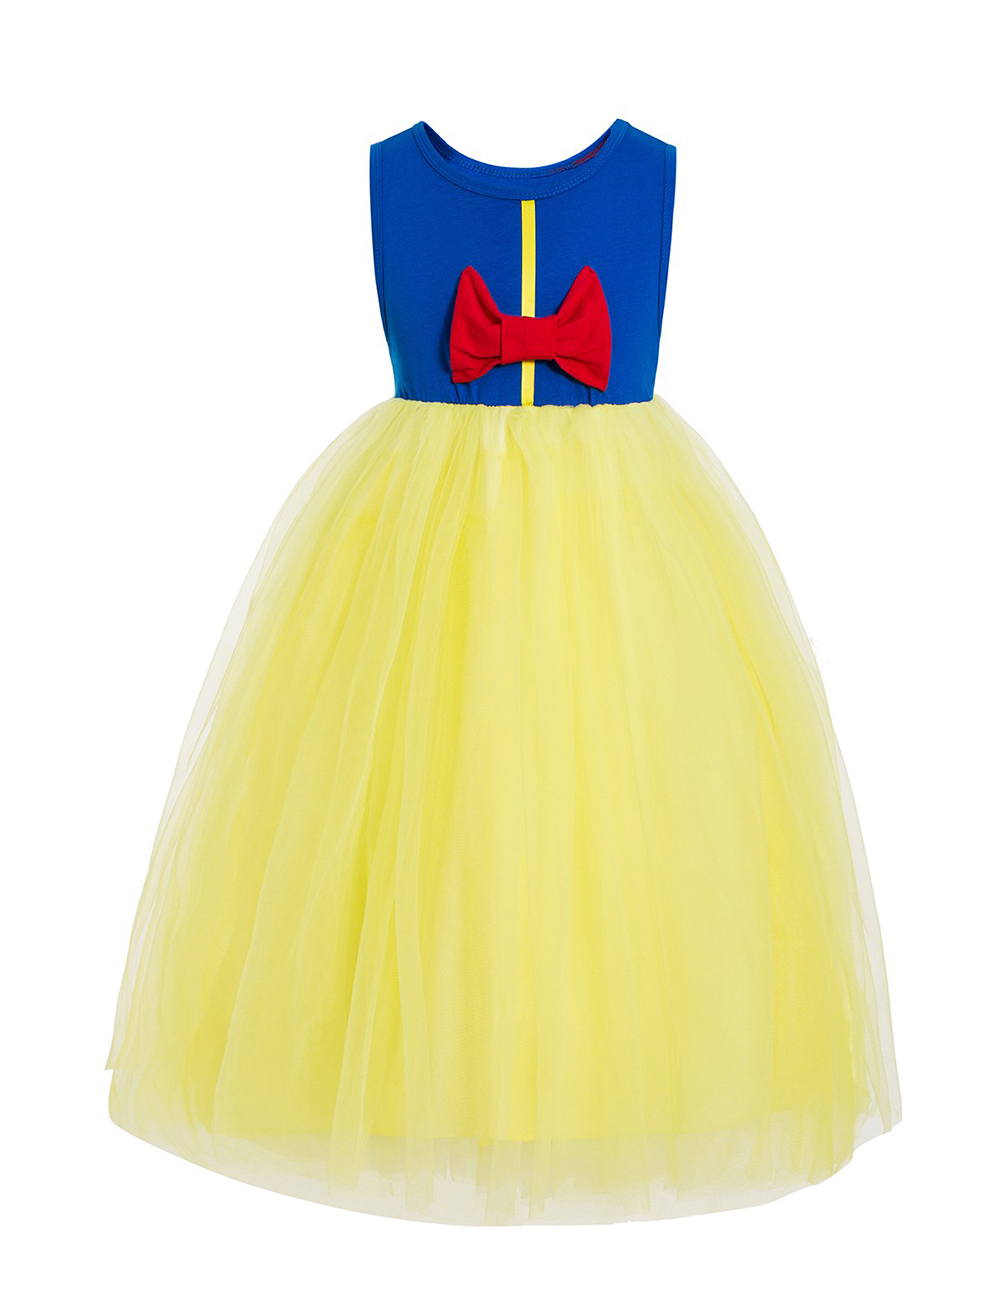 bell Ruffle Top Birthday Outfit Outfit Birthday Outfit Outfit  birthday tutu dress Flower Girls' Dresses kids clothes girls dres 6